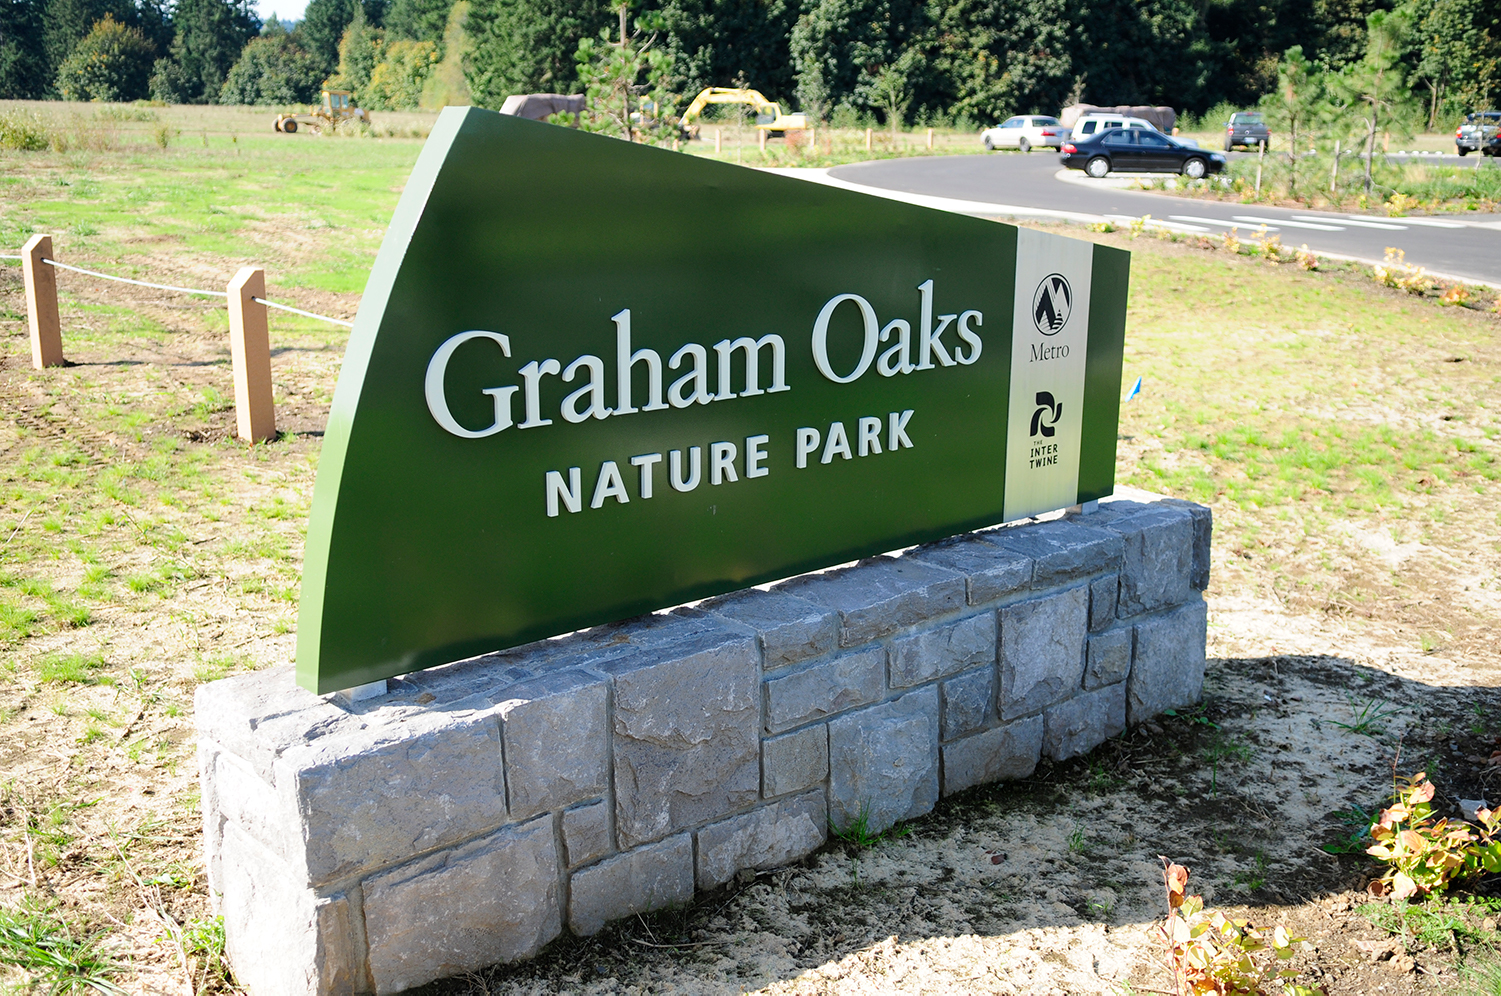 grahamoakspark_website_062118_01.jpg